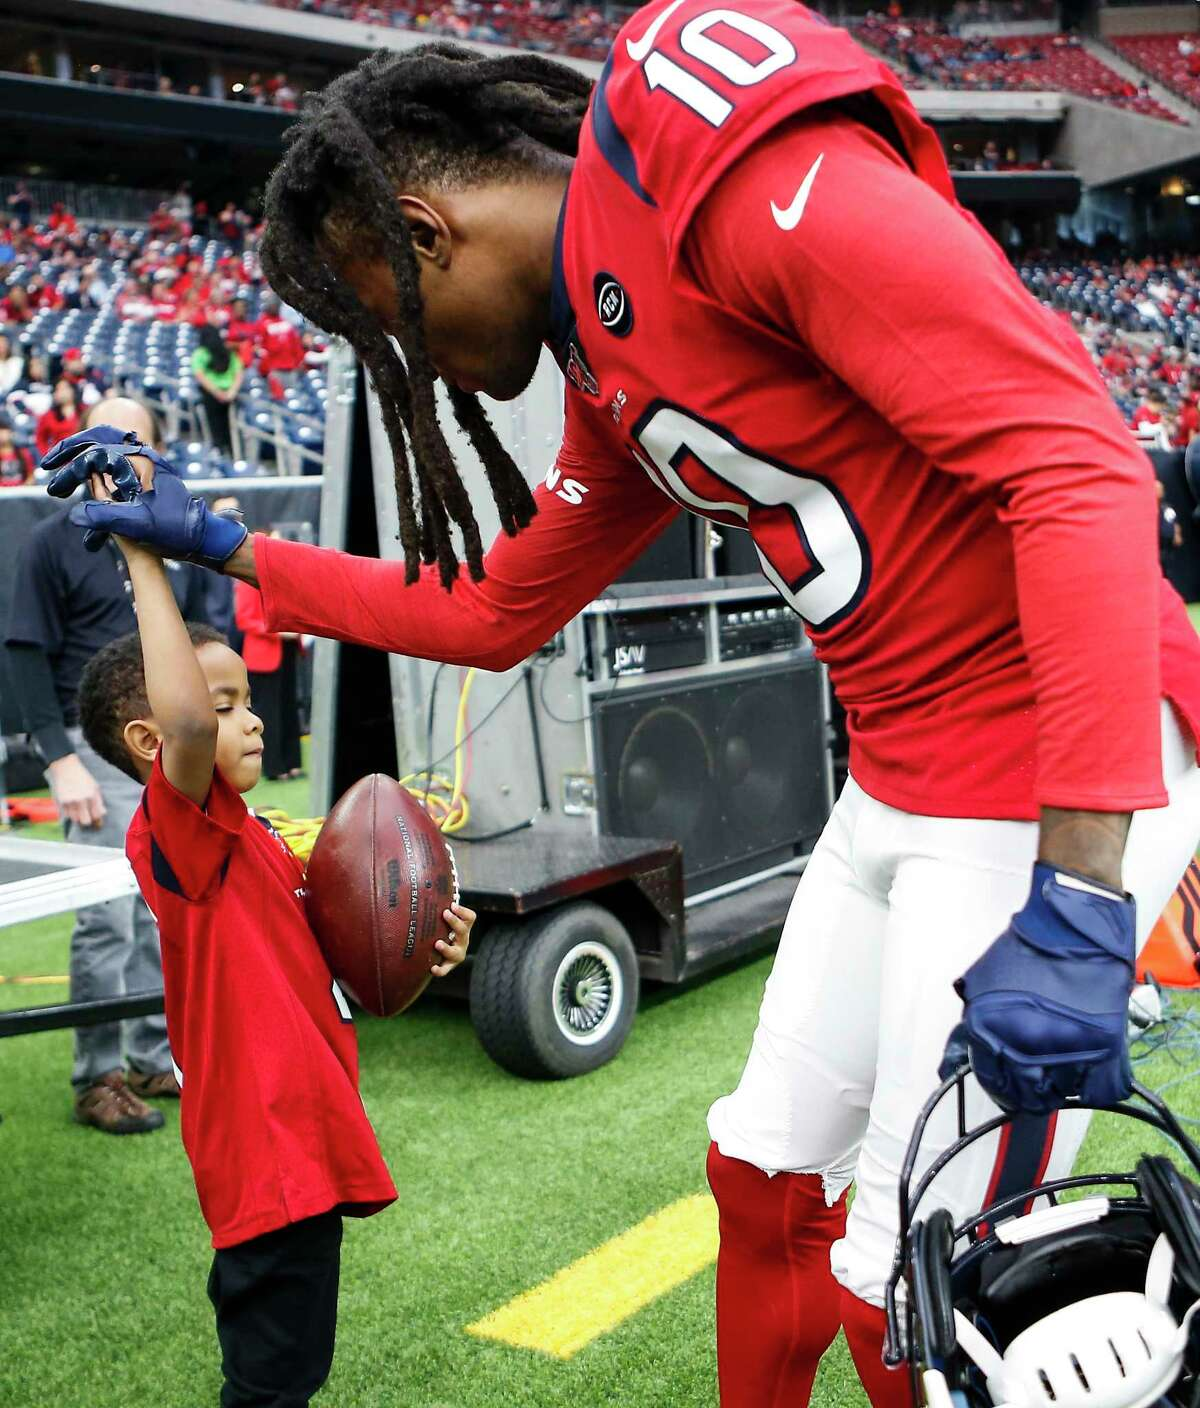 Houston Texans wide receiver DeAndre Hopkins (10) greets Daylon Watkins, 7, before an NFL football game against the Denver Broncos at NRG Stadium on Sunday, Dec. 8, 2019, in Houston. Watkins comes to the game through the Make-A-Wish Foundation. Watkins has been diagnosed with Severe Aplastic Anemia and has spent the past couple days visiting the the Texans player during practice and Sunday's game.